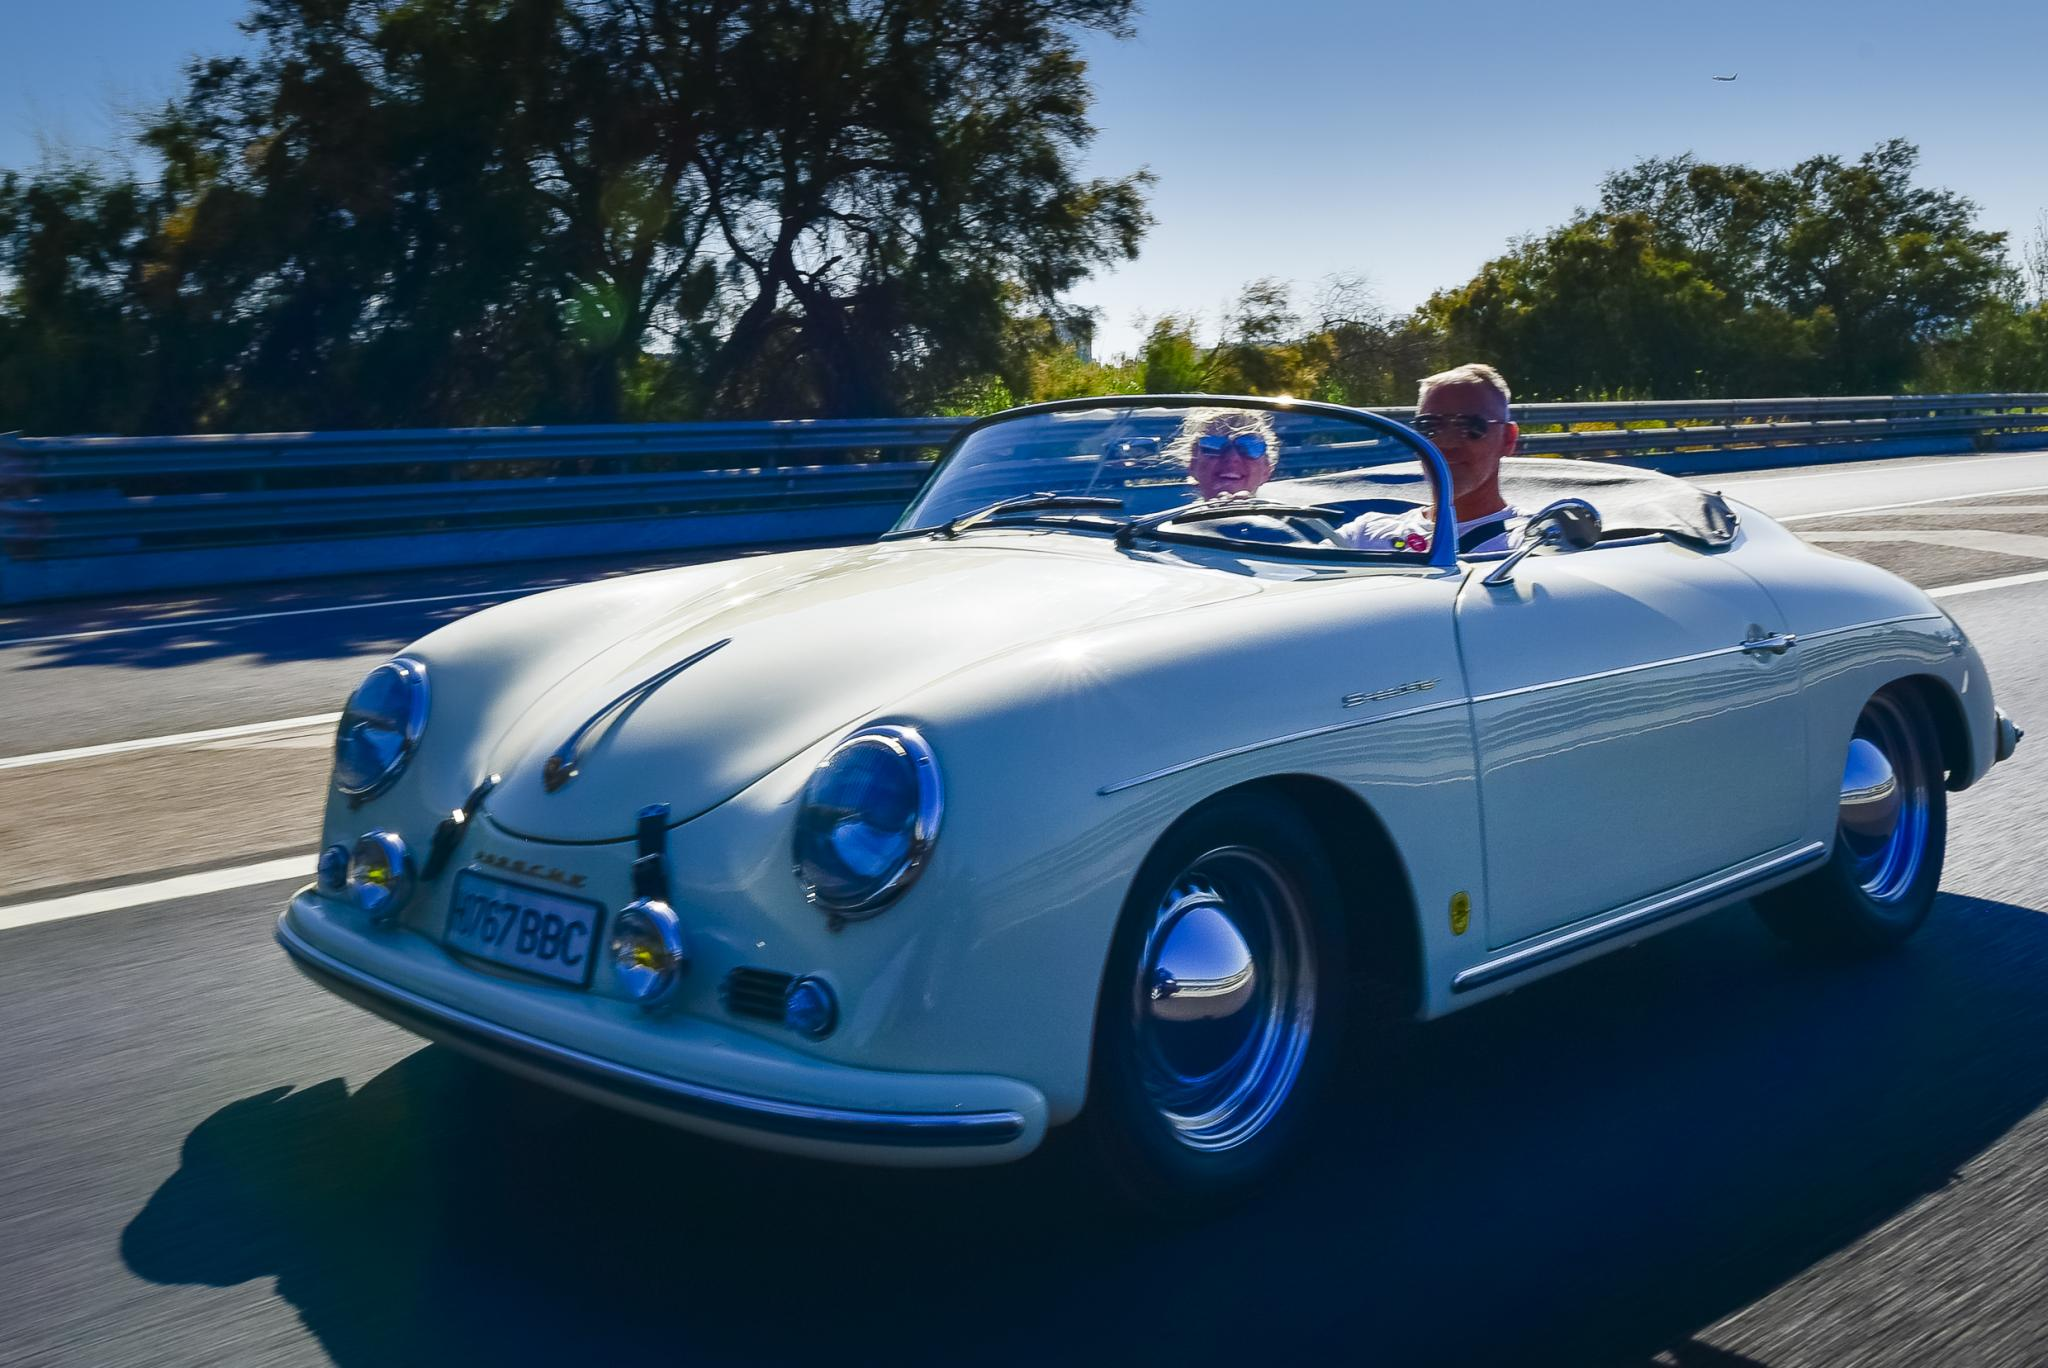 Majorca is such a great drive, especially in your Porsche 365